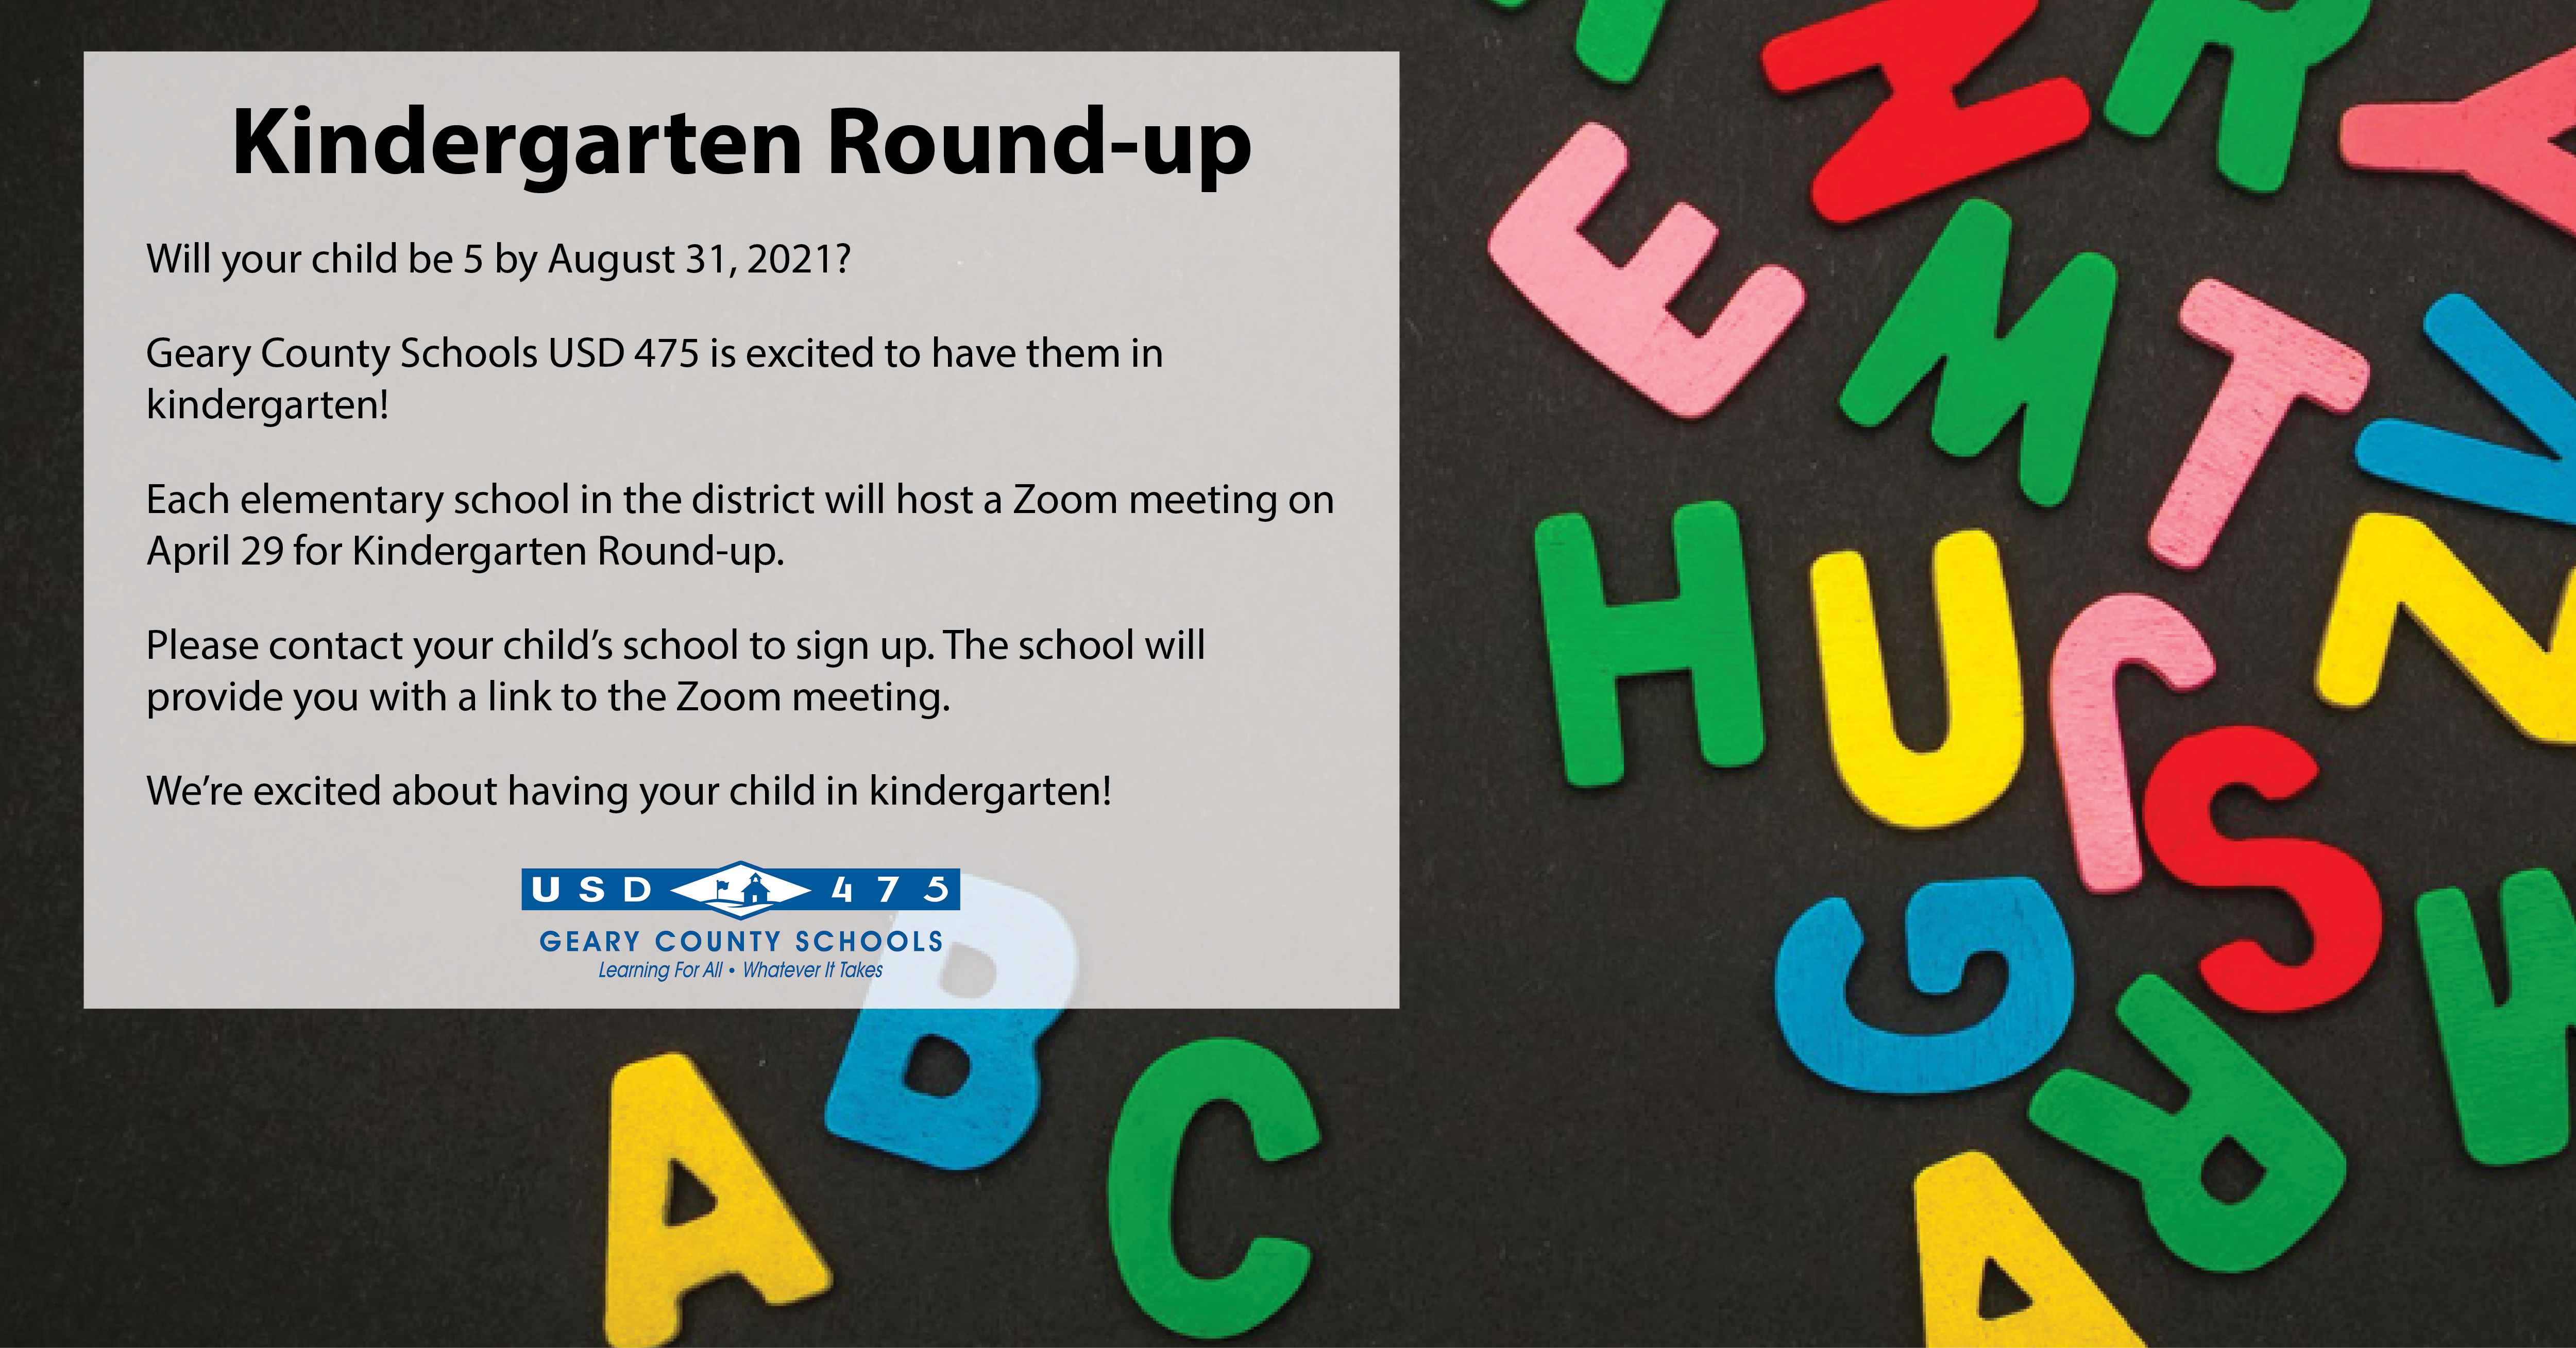 Parents, if you have a child that will turn 5 before August 21, 2021 they are Kindergarten eligible age for the fall! All schools will be holding a Kindergarten round-up session on April 29. You can contact your neighborhood school and they will send you the Zoom link for round-up. If you're not sure of your neighborhood school, go to Infofinder (www.usd475.org >links> infofinder) type in your address and it will let you know which elementary school boundary you live in.